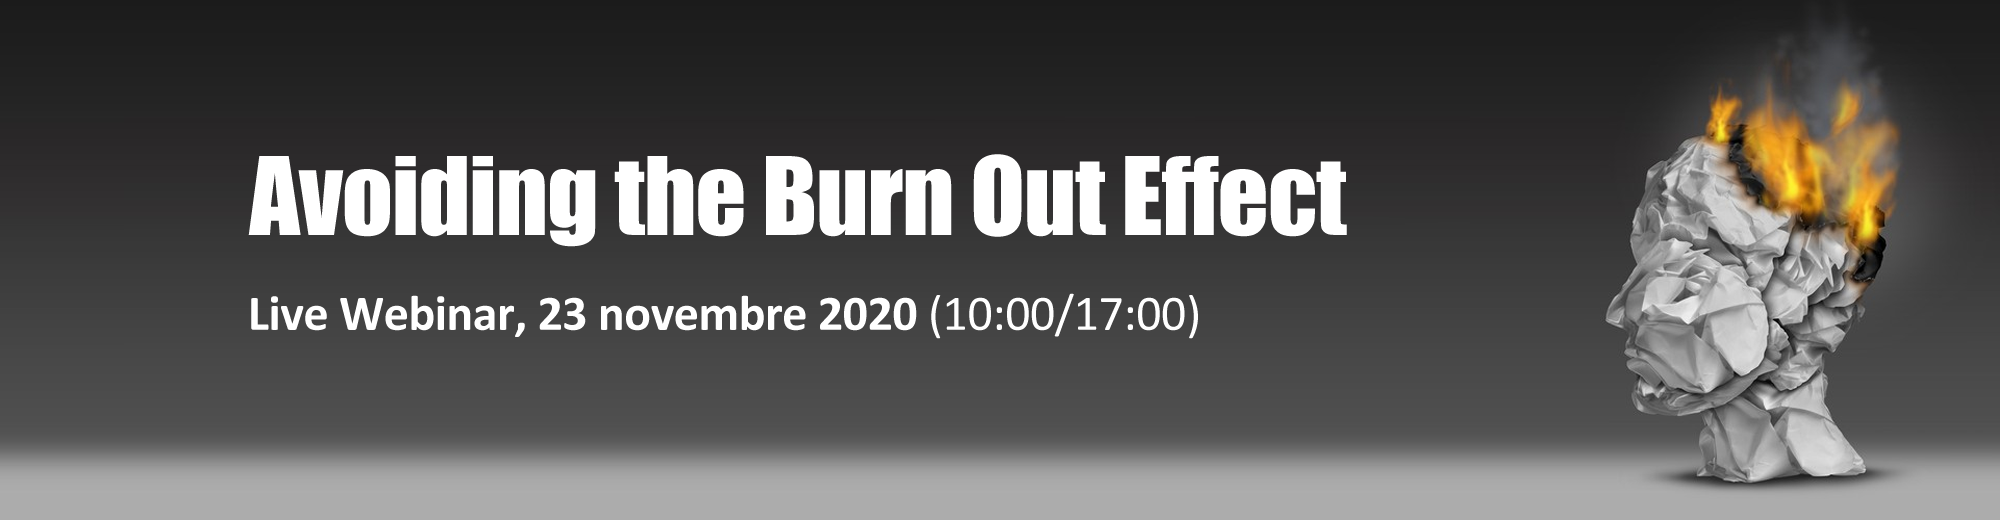 Avoiding The Burn Out Effect